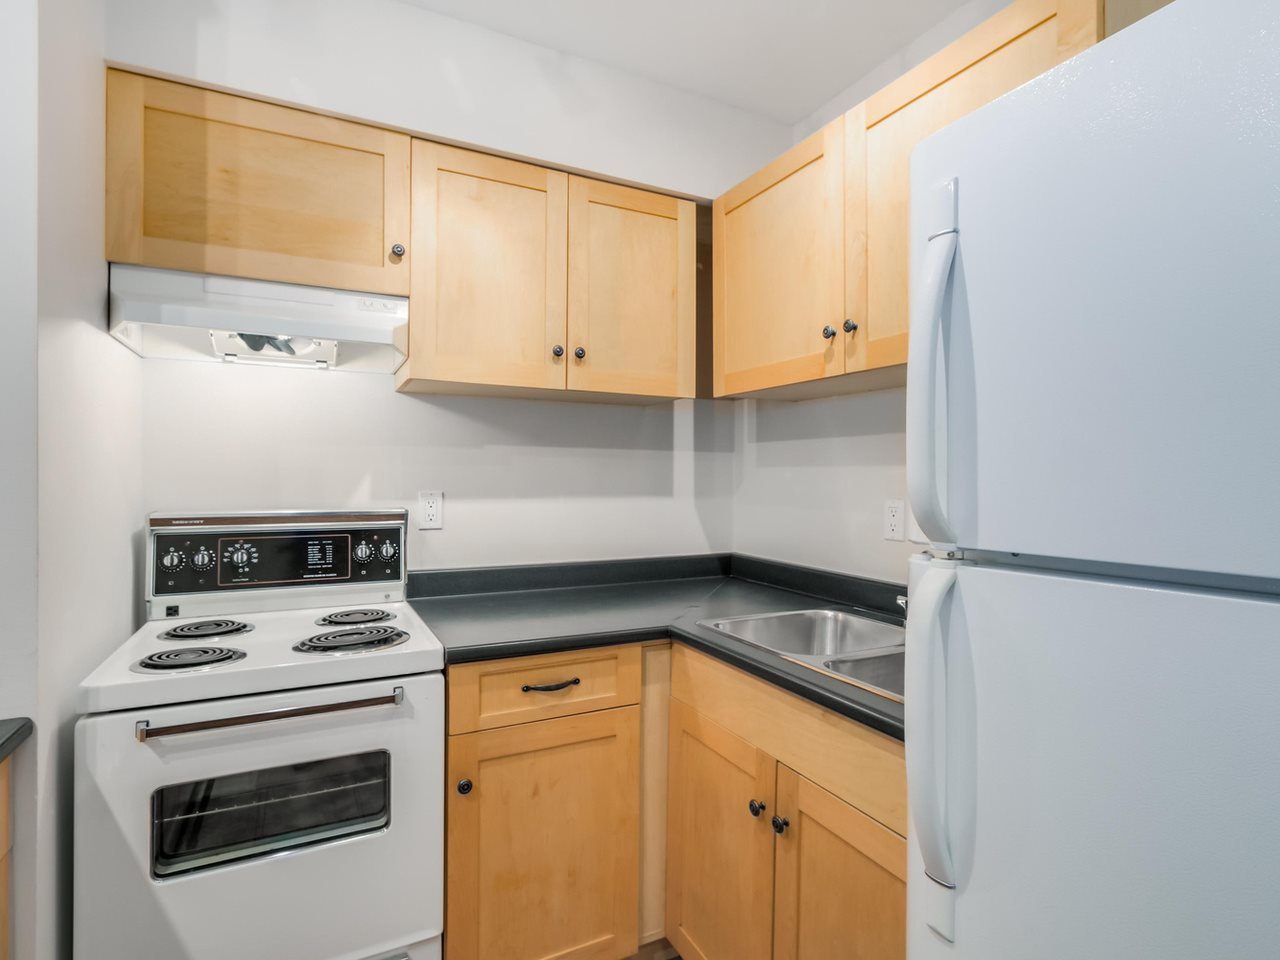 """Photo 10: Photos: 207 1545 E 2ND Avenue in Vancouver: Grandview VE Condo for sale in """"TALISHAN WOODS"""" (Vancouver East)  : MLS®# R2086466"""